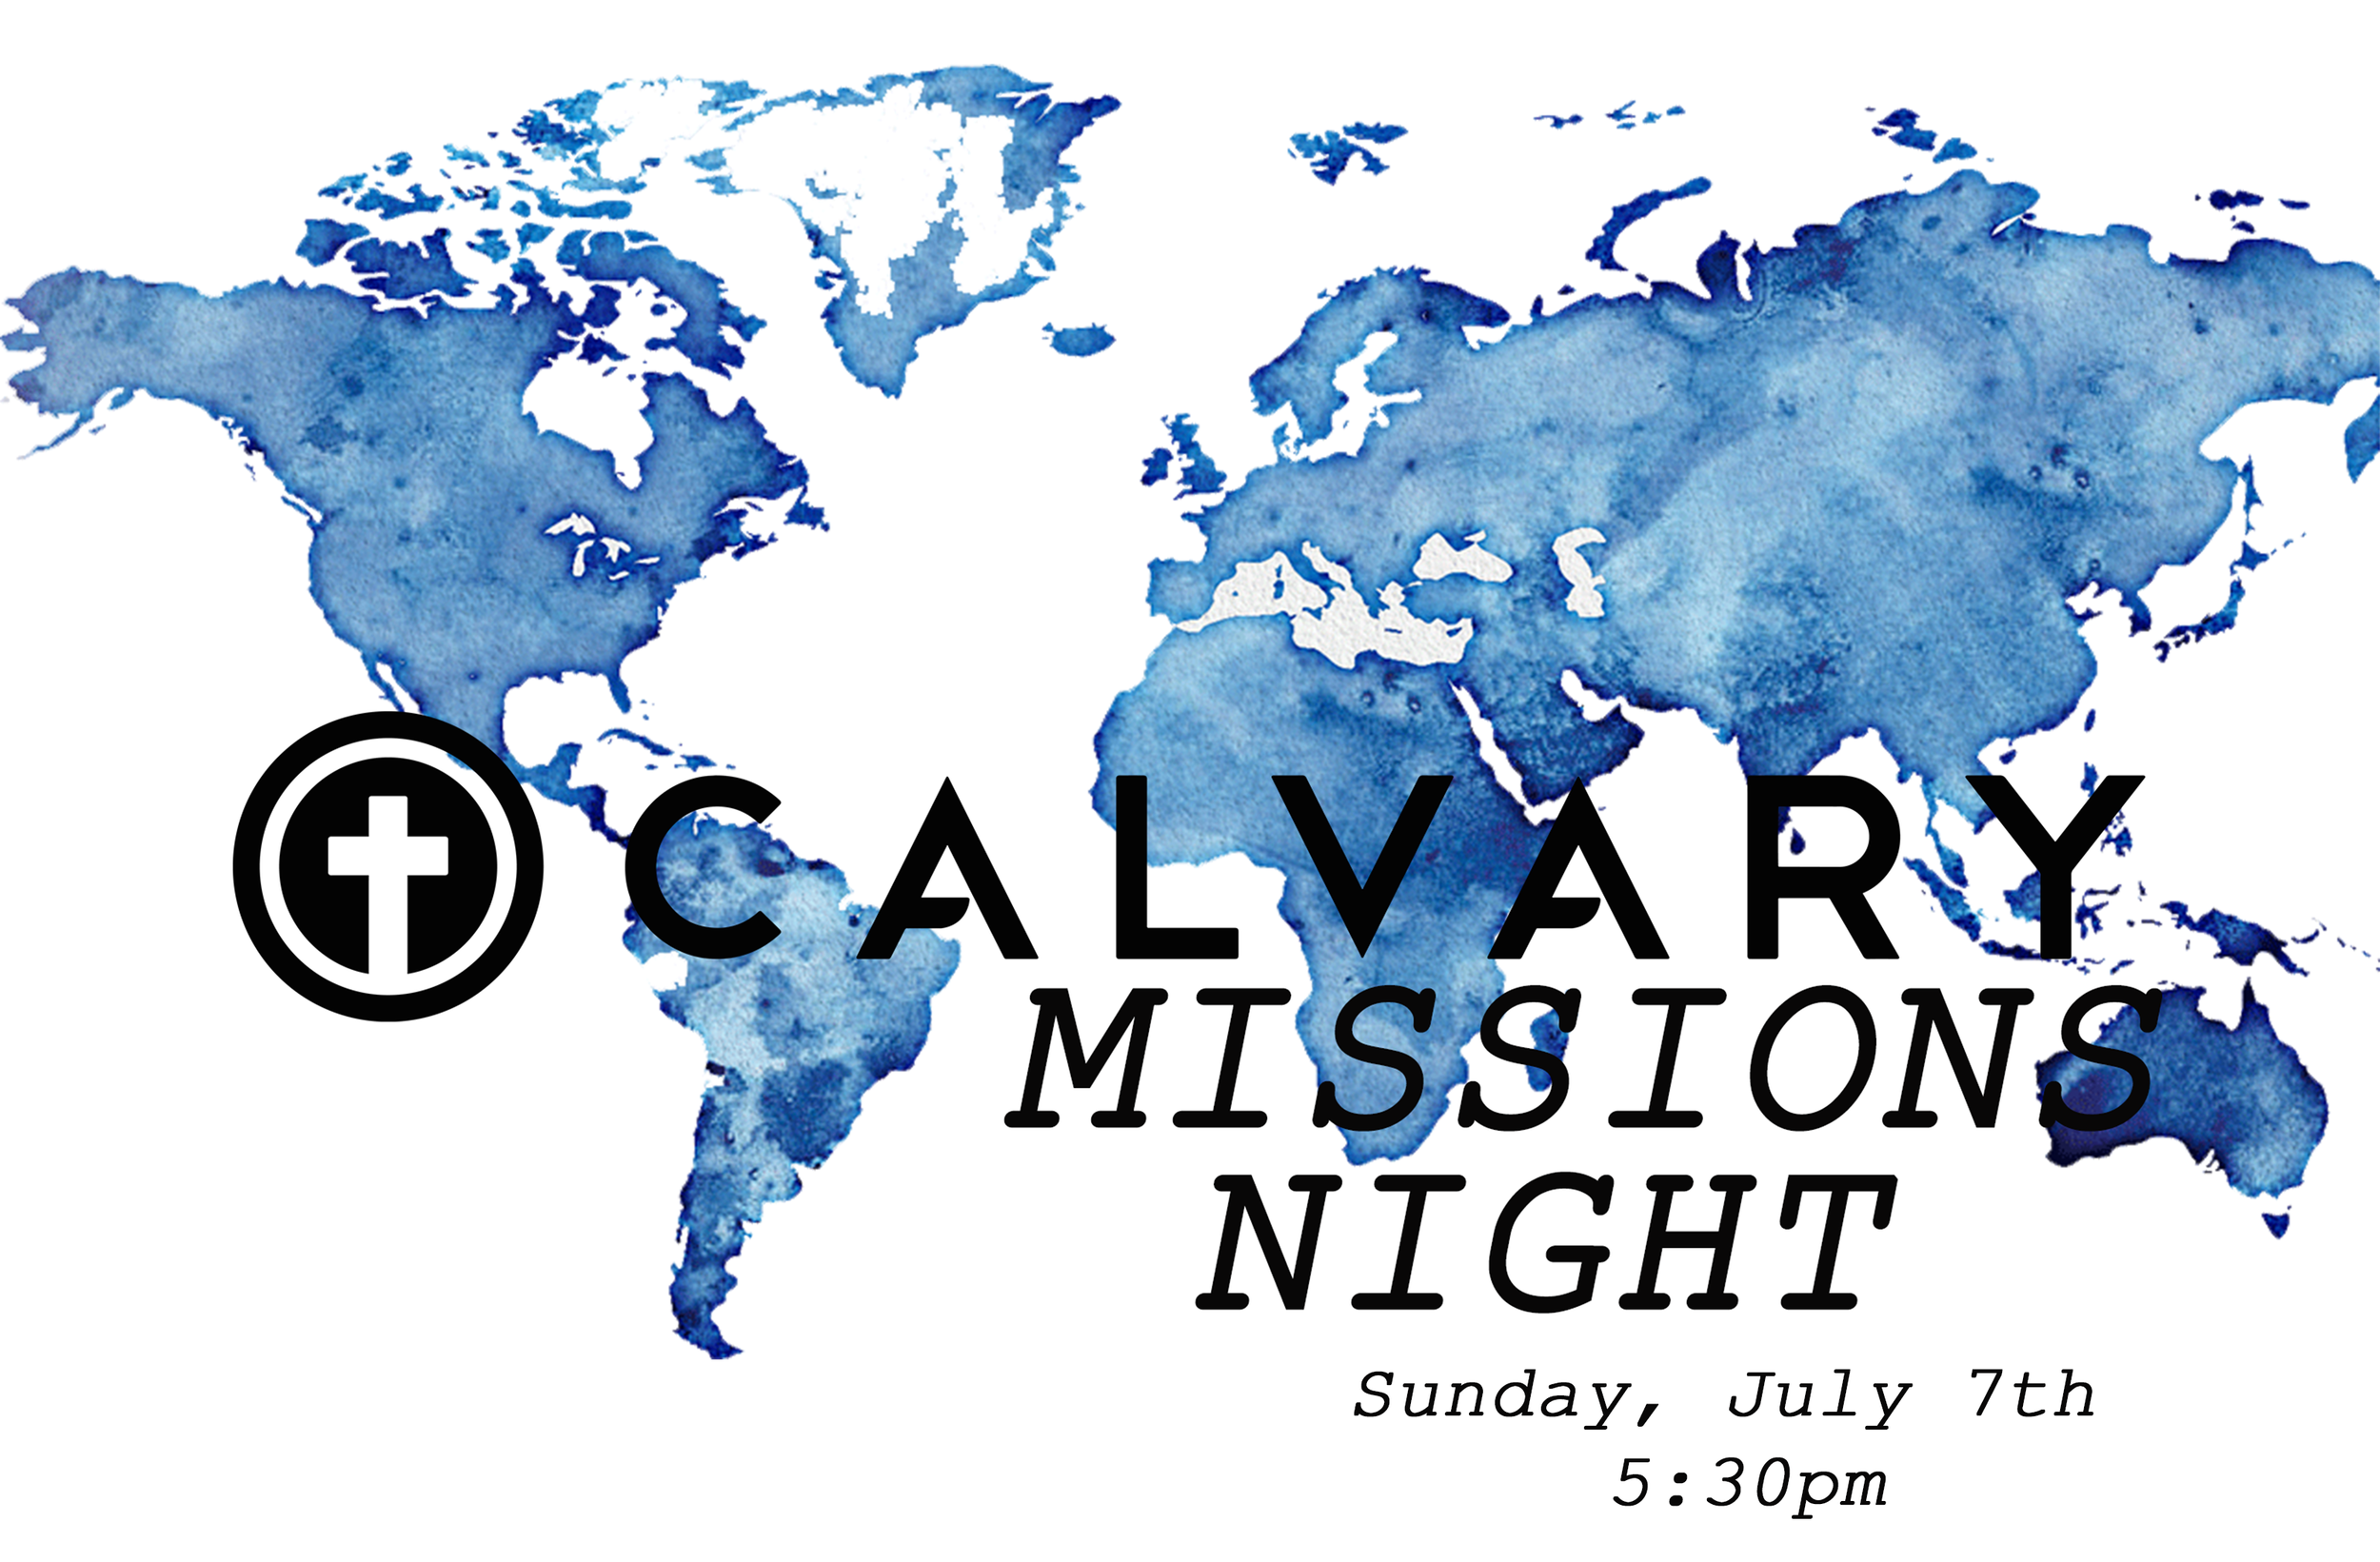 Join us for Missions Night on Sunday, July 7th @ 5:30pm for a Potluck, time of worship and testimonies from our Missionaries on the field! Potluck begins at 5:30pm in the Courtyard of Calvary Chapel San Juan Capistrano. We hope to see you there!!